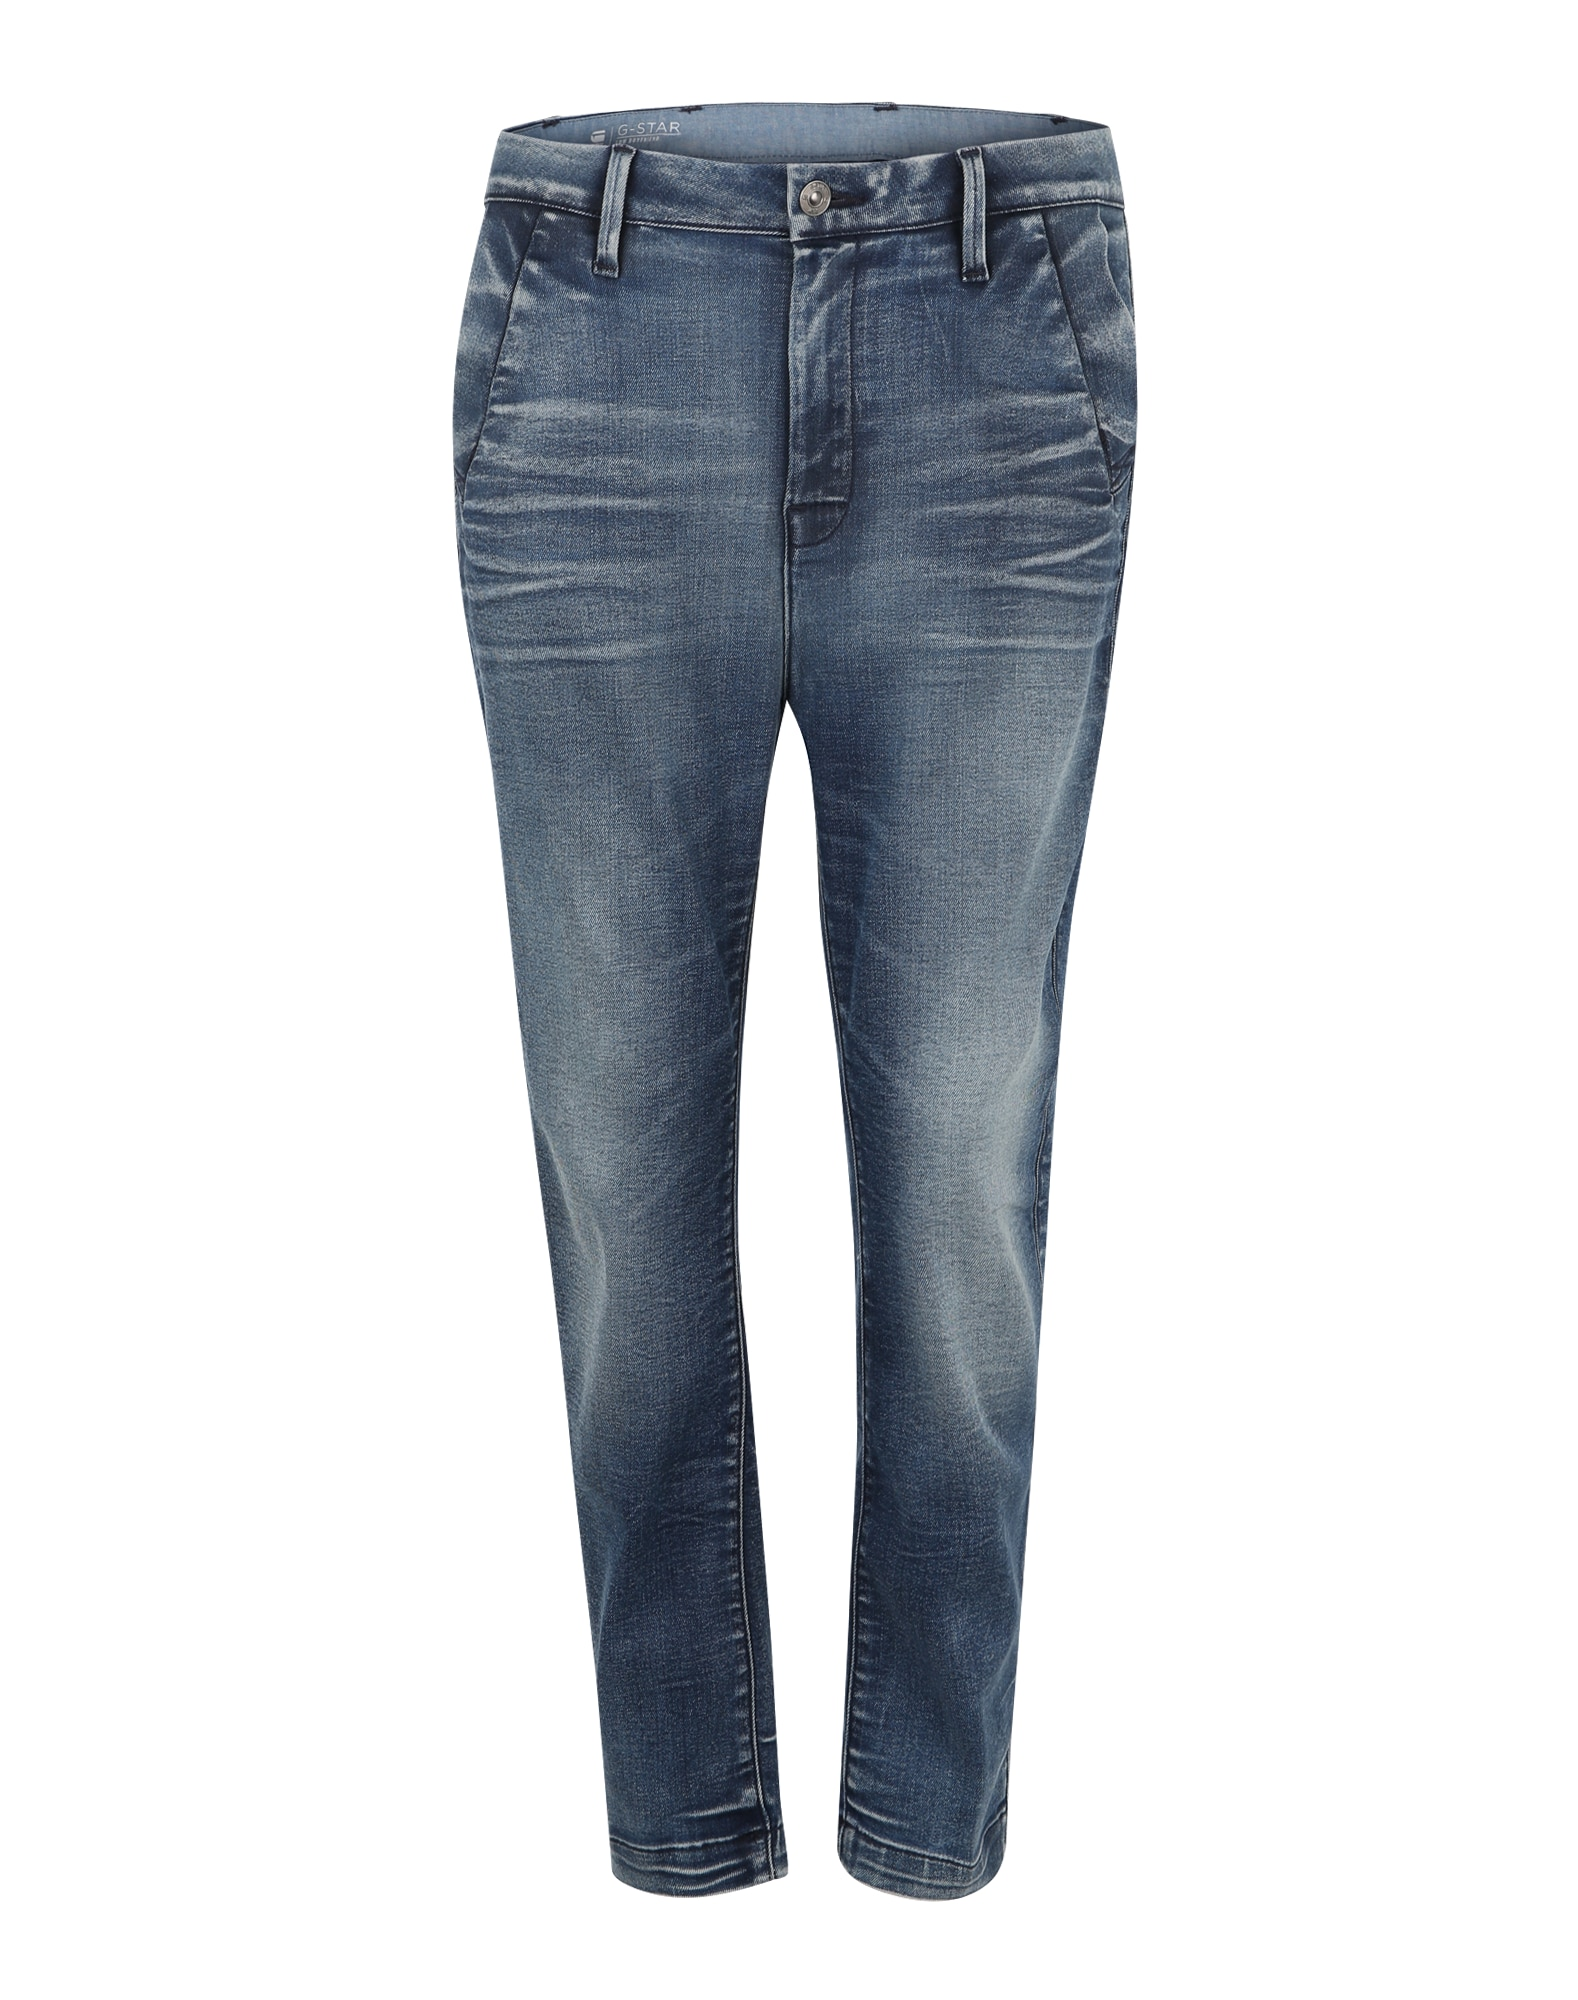 G-STAR RAW Dames Jeans Bronson Low Boyfriend donkerblauw